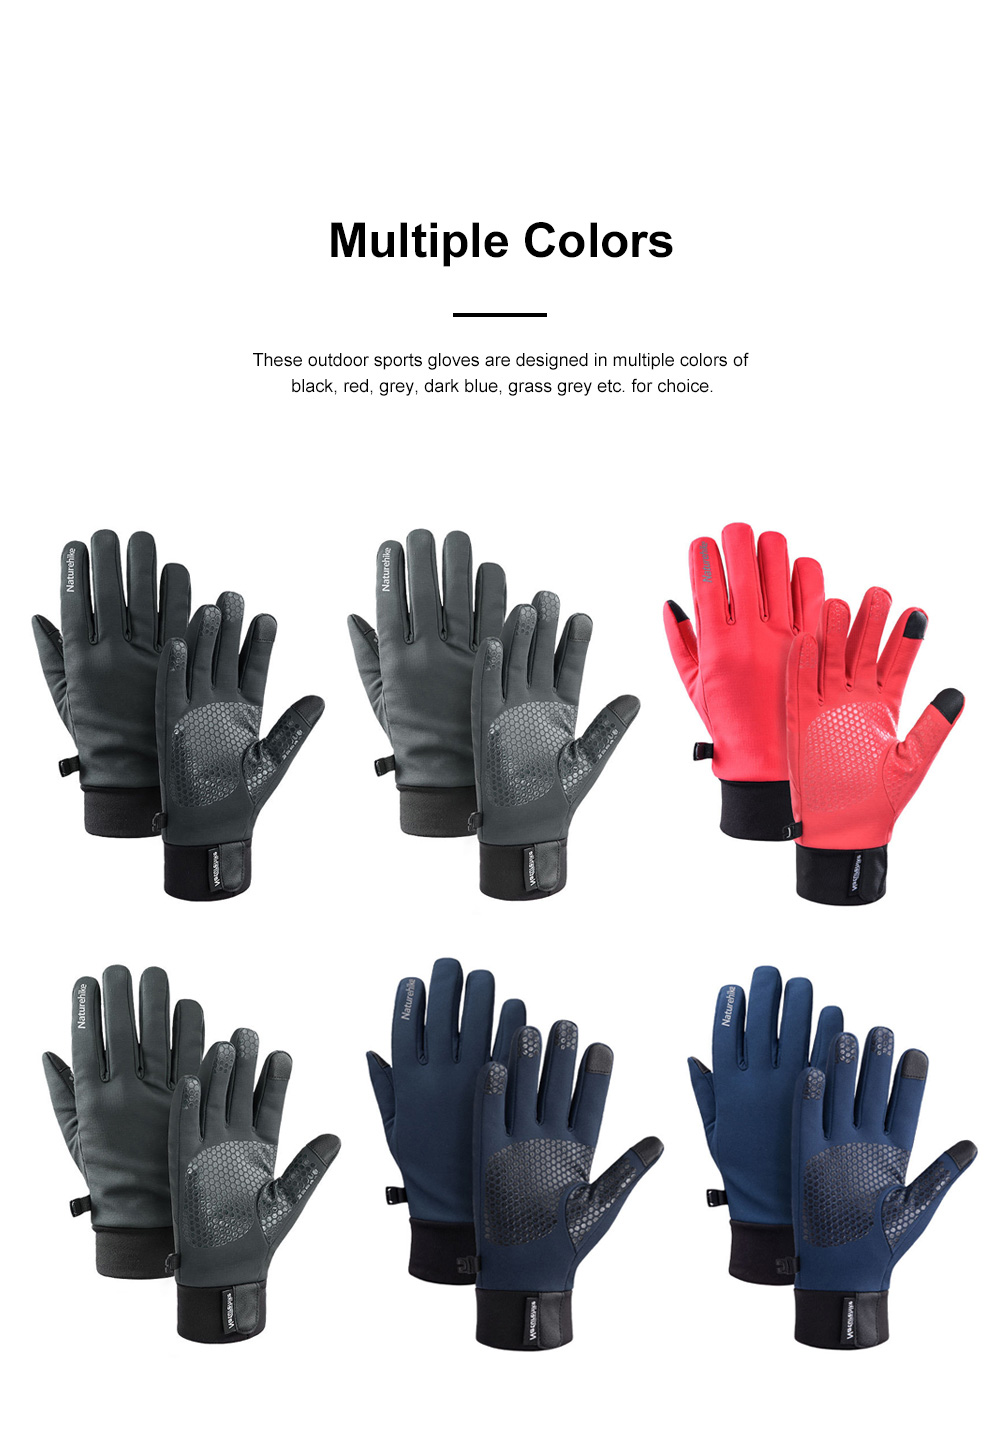 Naturehike Warm Gloves for Outdoors Running Hiking Waterproof Thermal Sports Gloves Touch Screen Designed Gloves 6